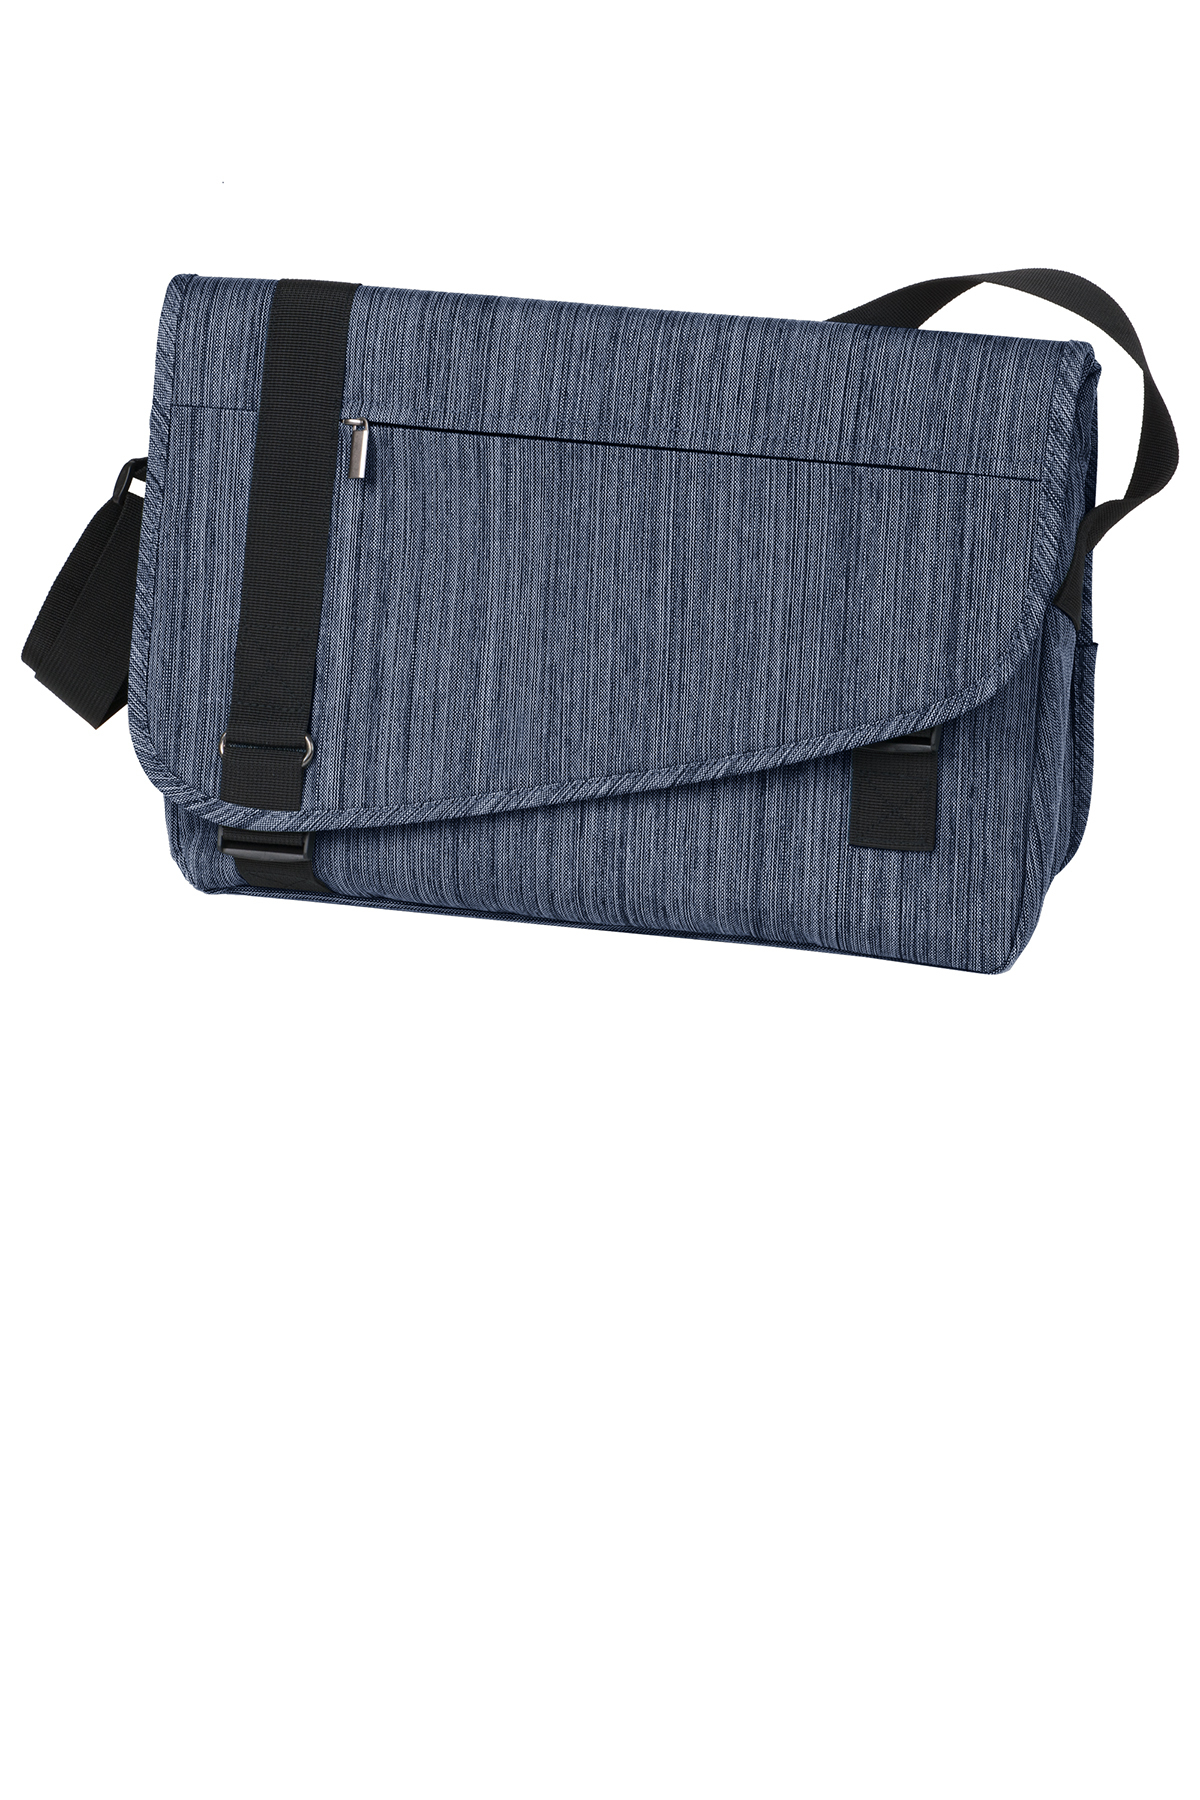 Port Authority BG303 Crossbody Messenger